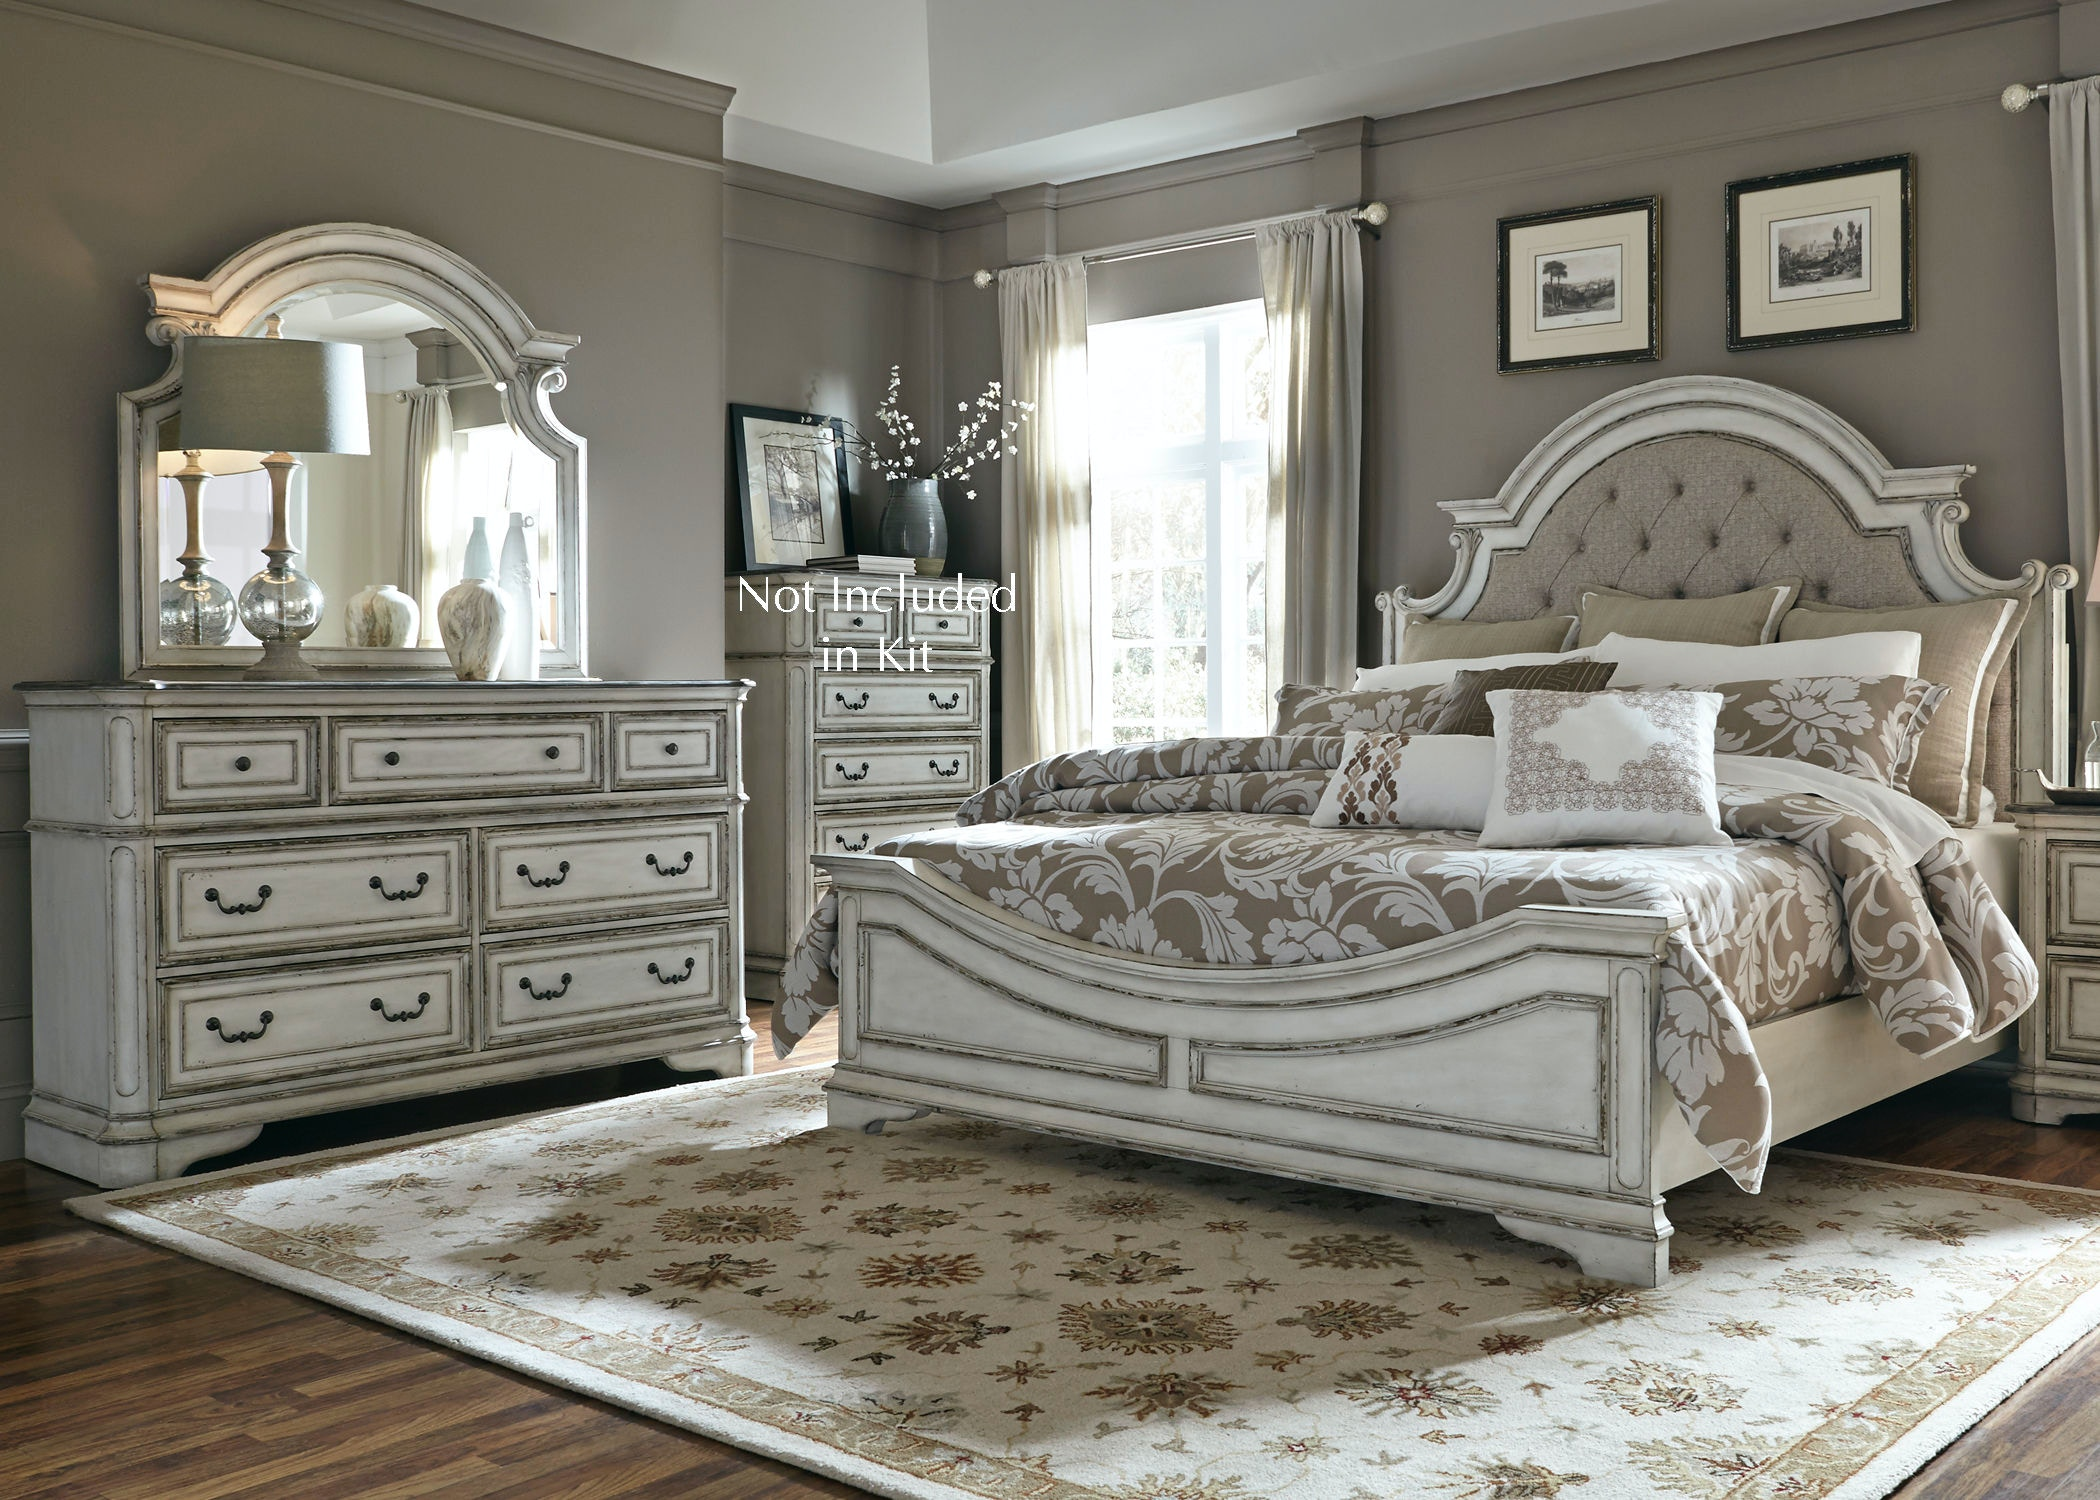 Liberty Furniture Bedroom King Uph Bed Dresser And Mirror